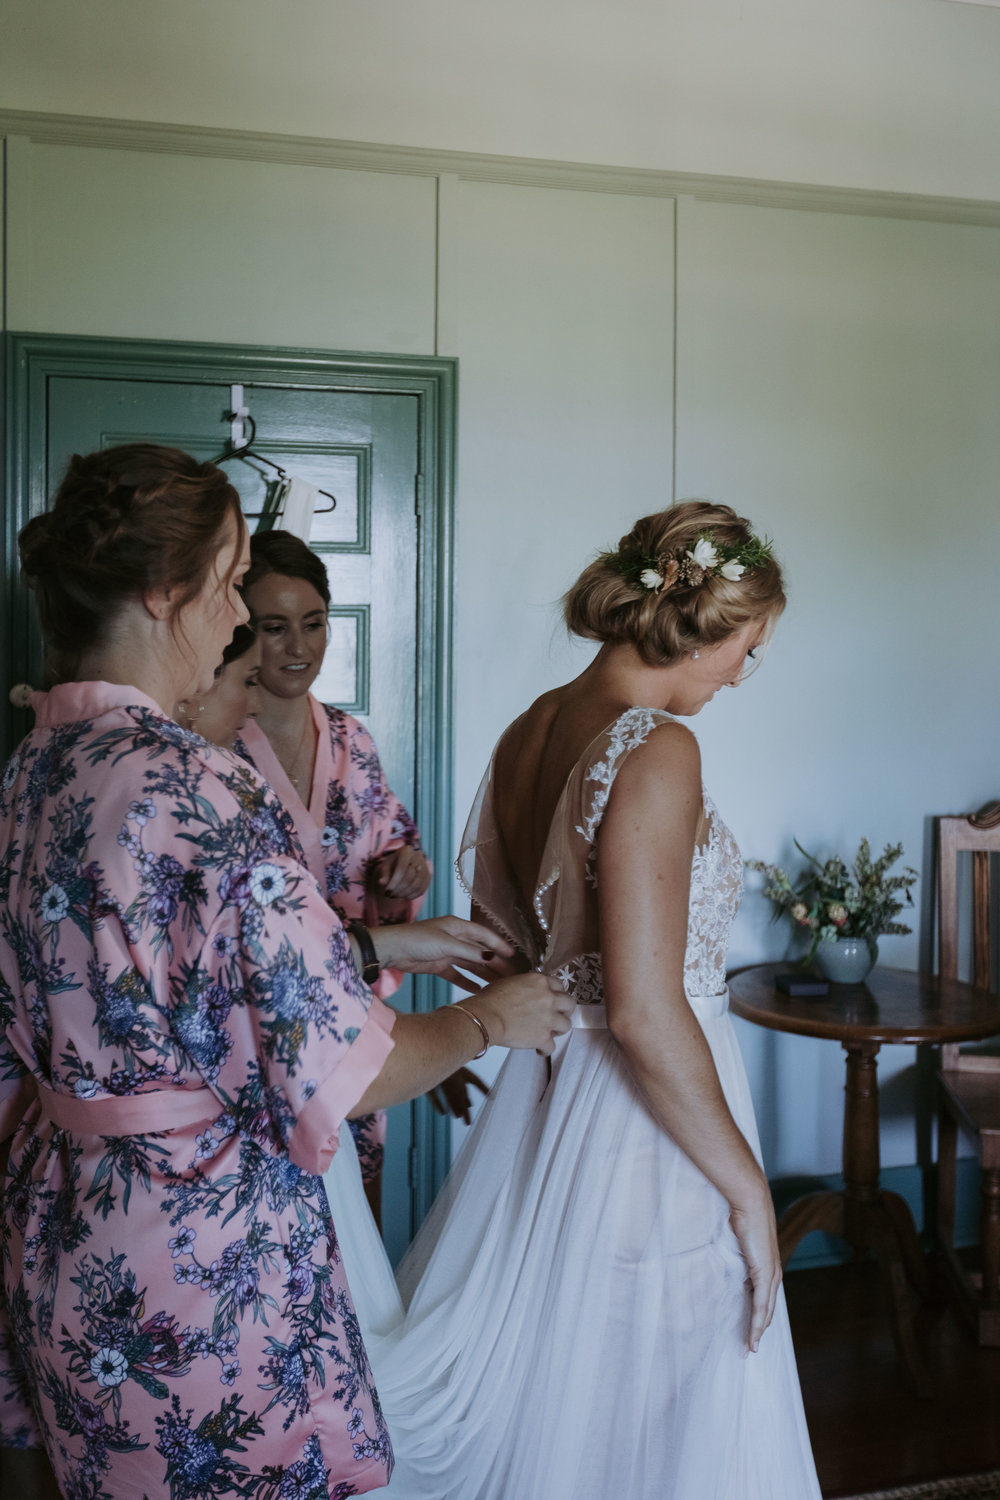 Bridesmaid fitting wedding dress on bride. Candid wedding photography on the South Coast